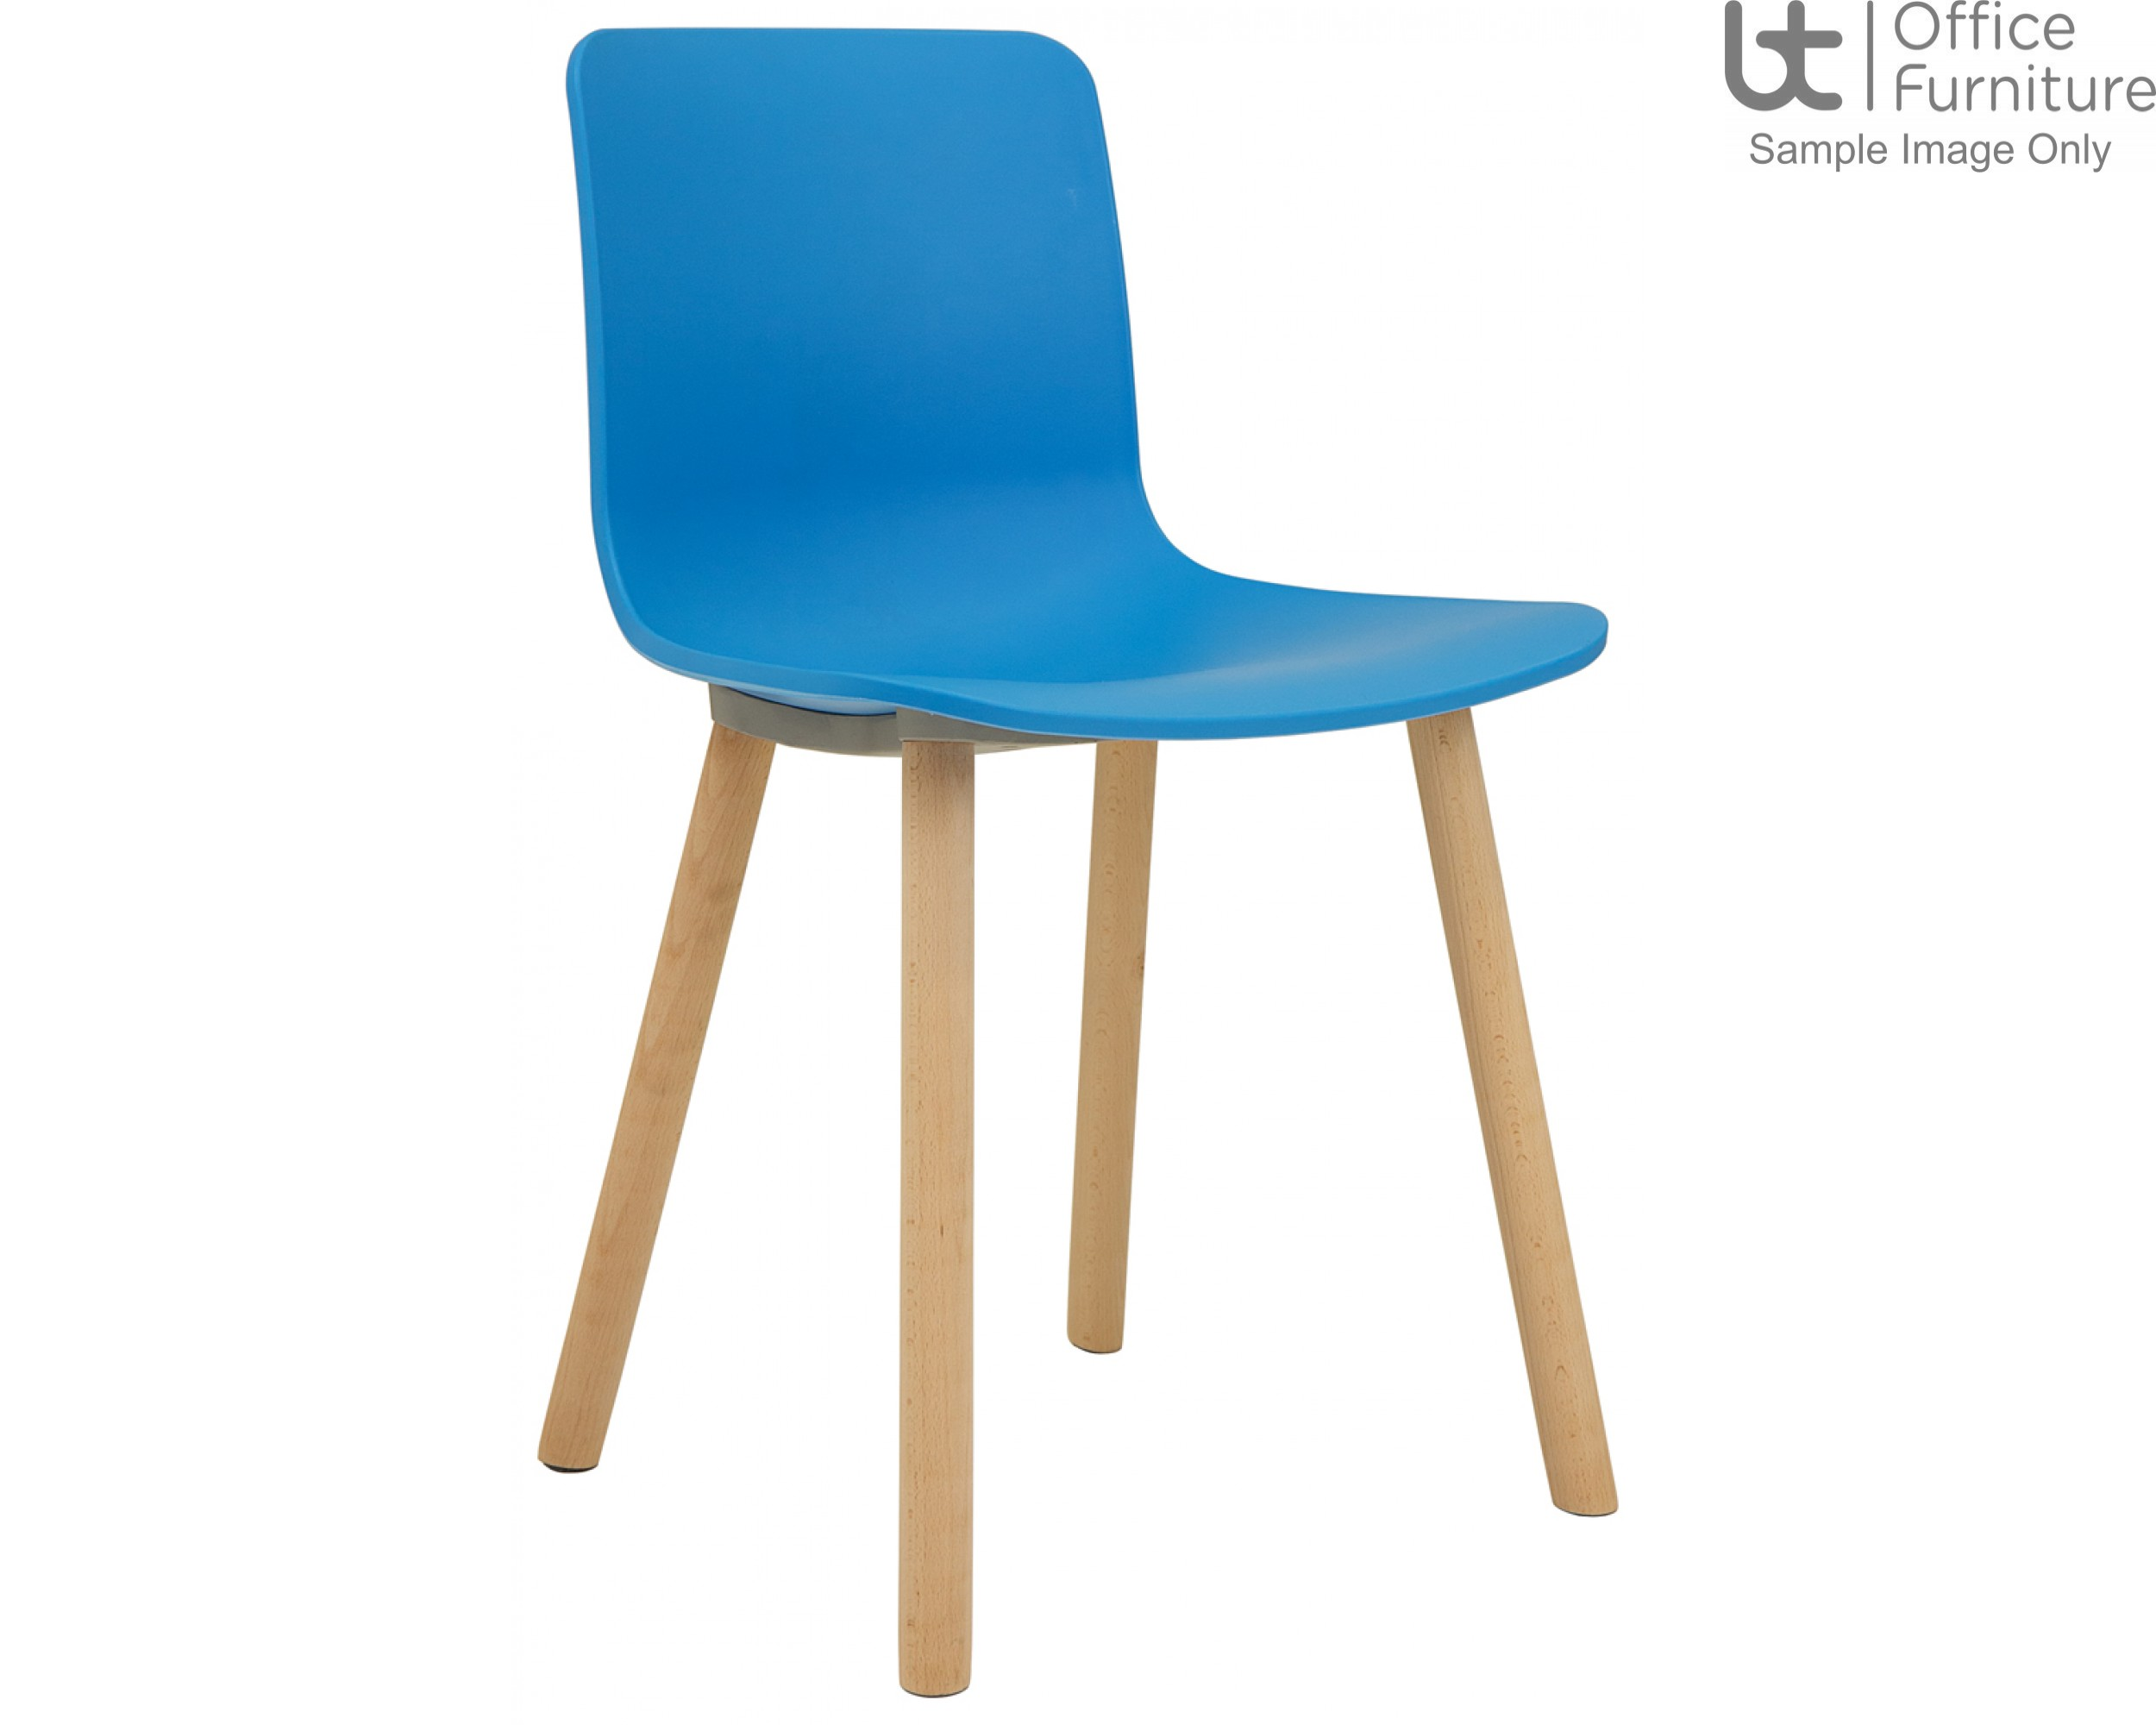 Elite Breakout Seating - Ben Polypropylene Shell Breakout Chair with Wooden Frame